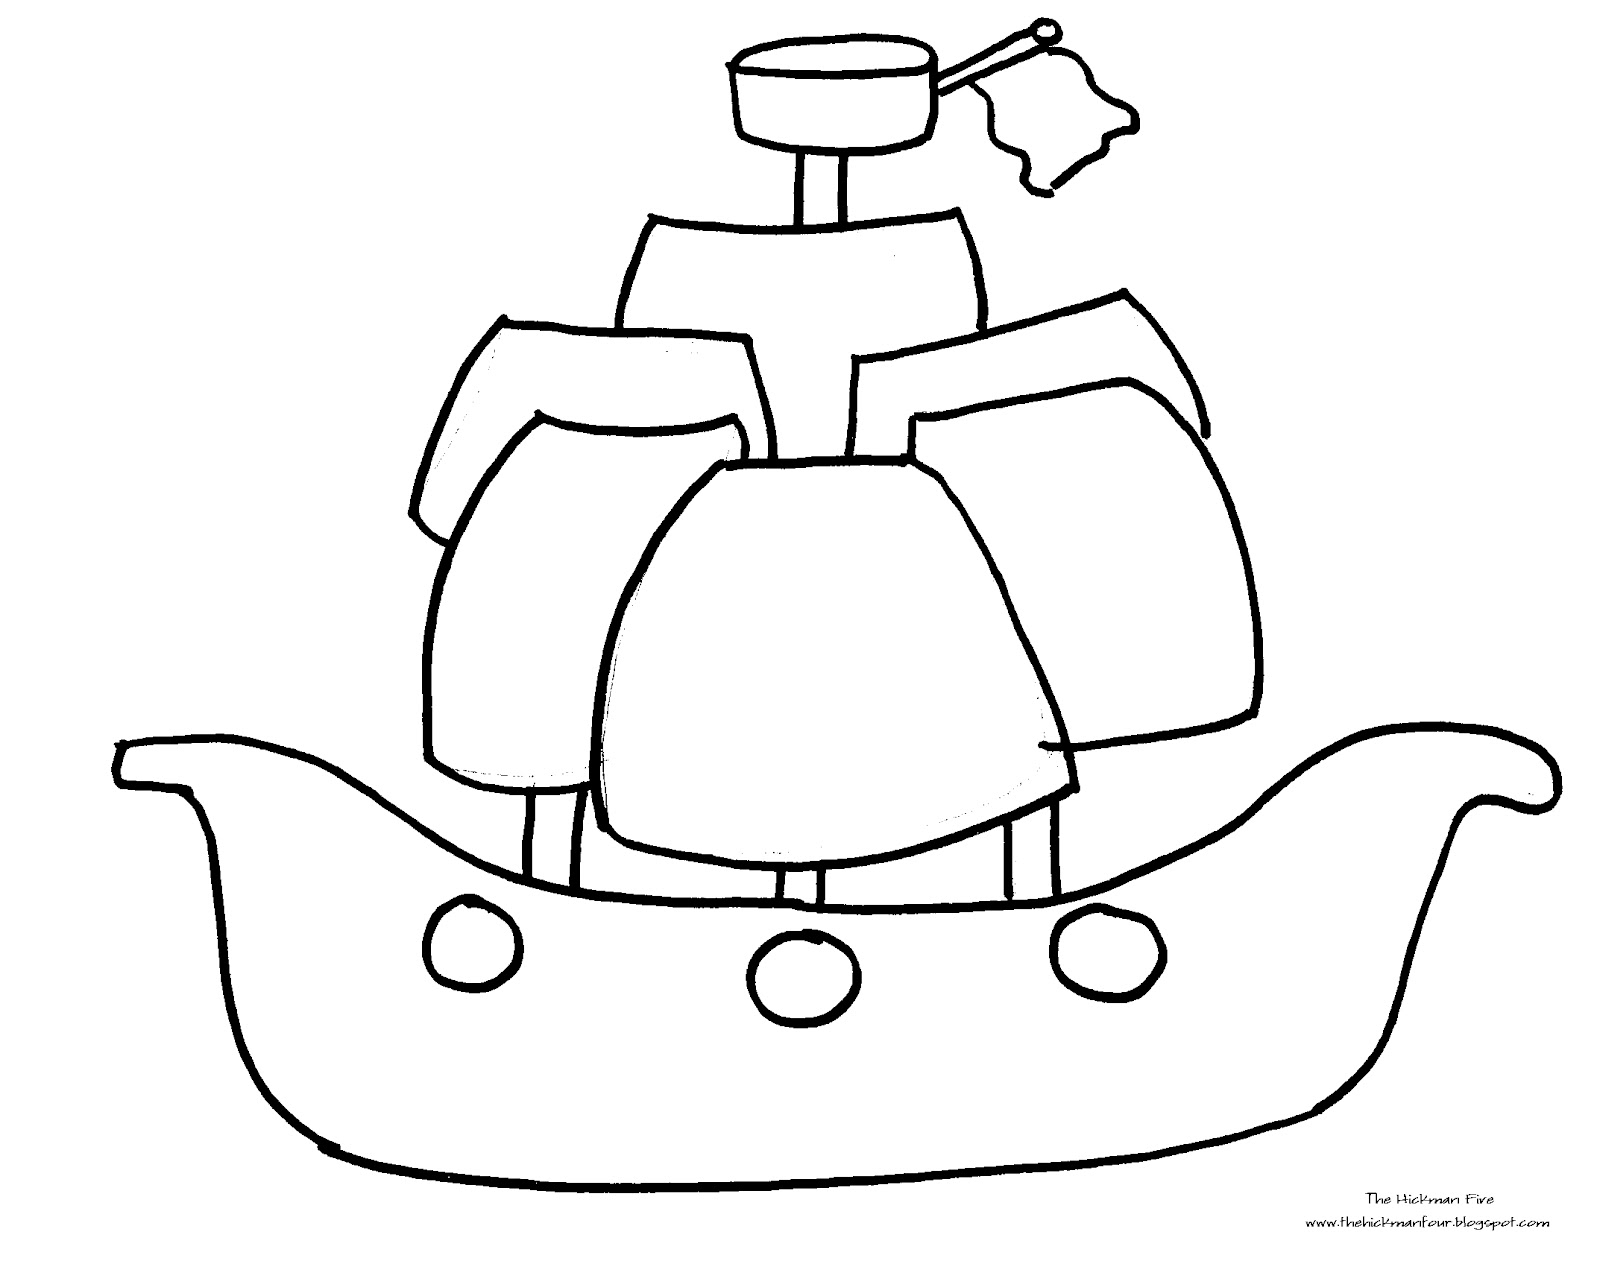 Pirate Boat Coloring Page At GetDrawings